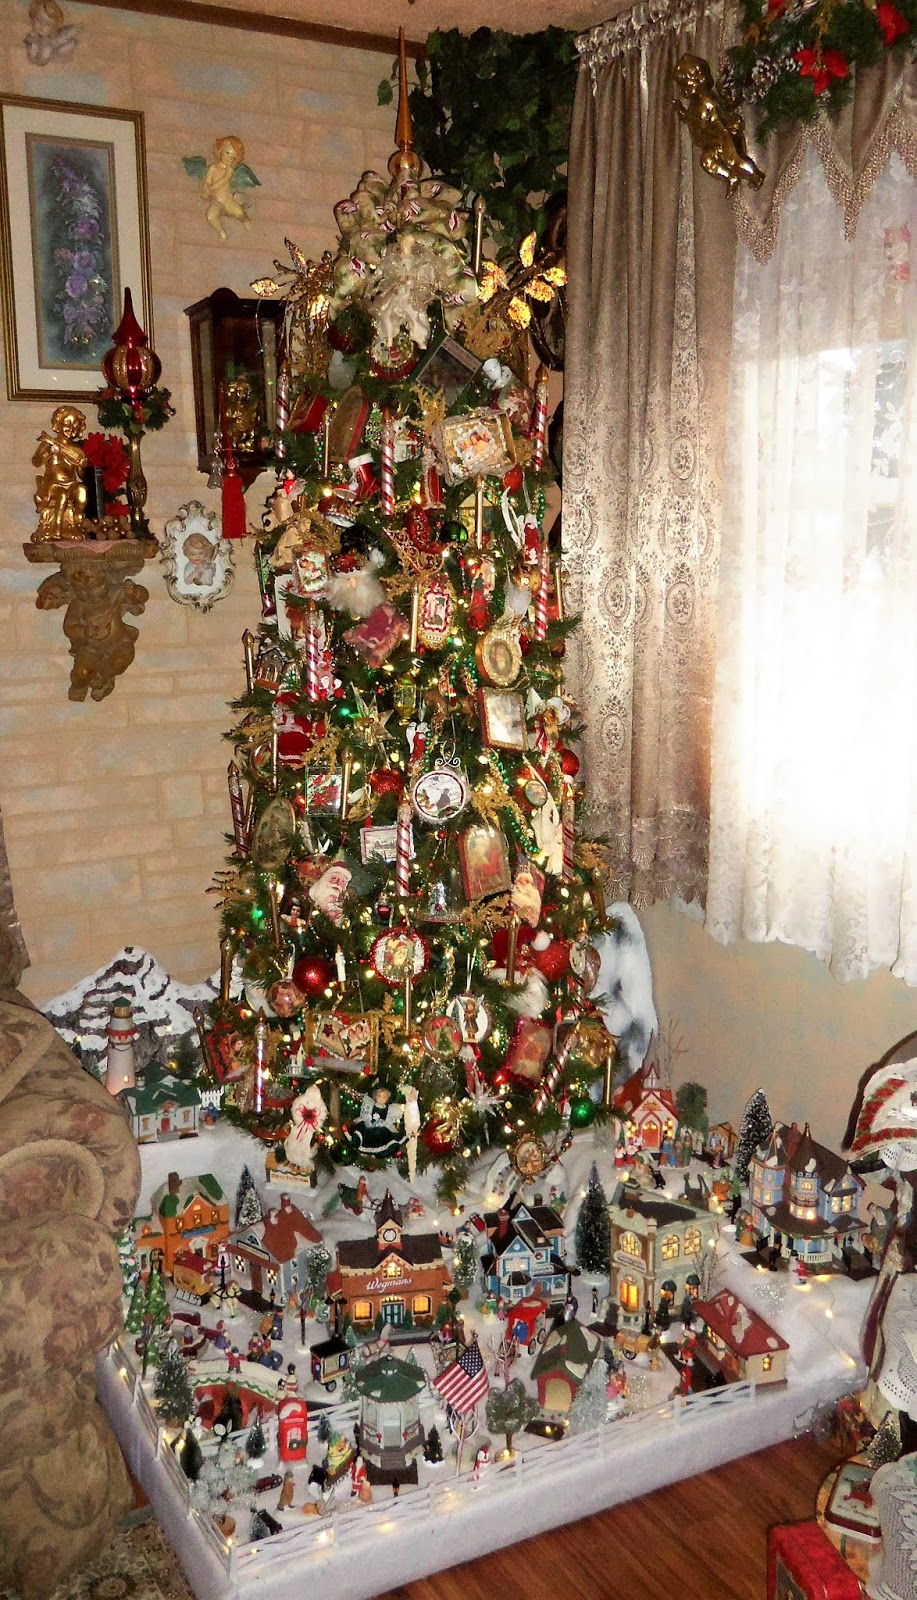 Christmas Home Tour, Victorian Tree and Village in the Living Room, 2019